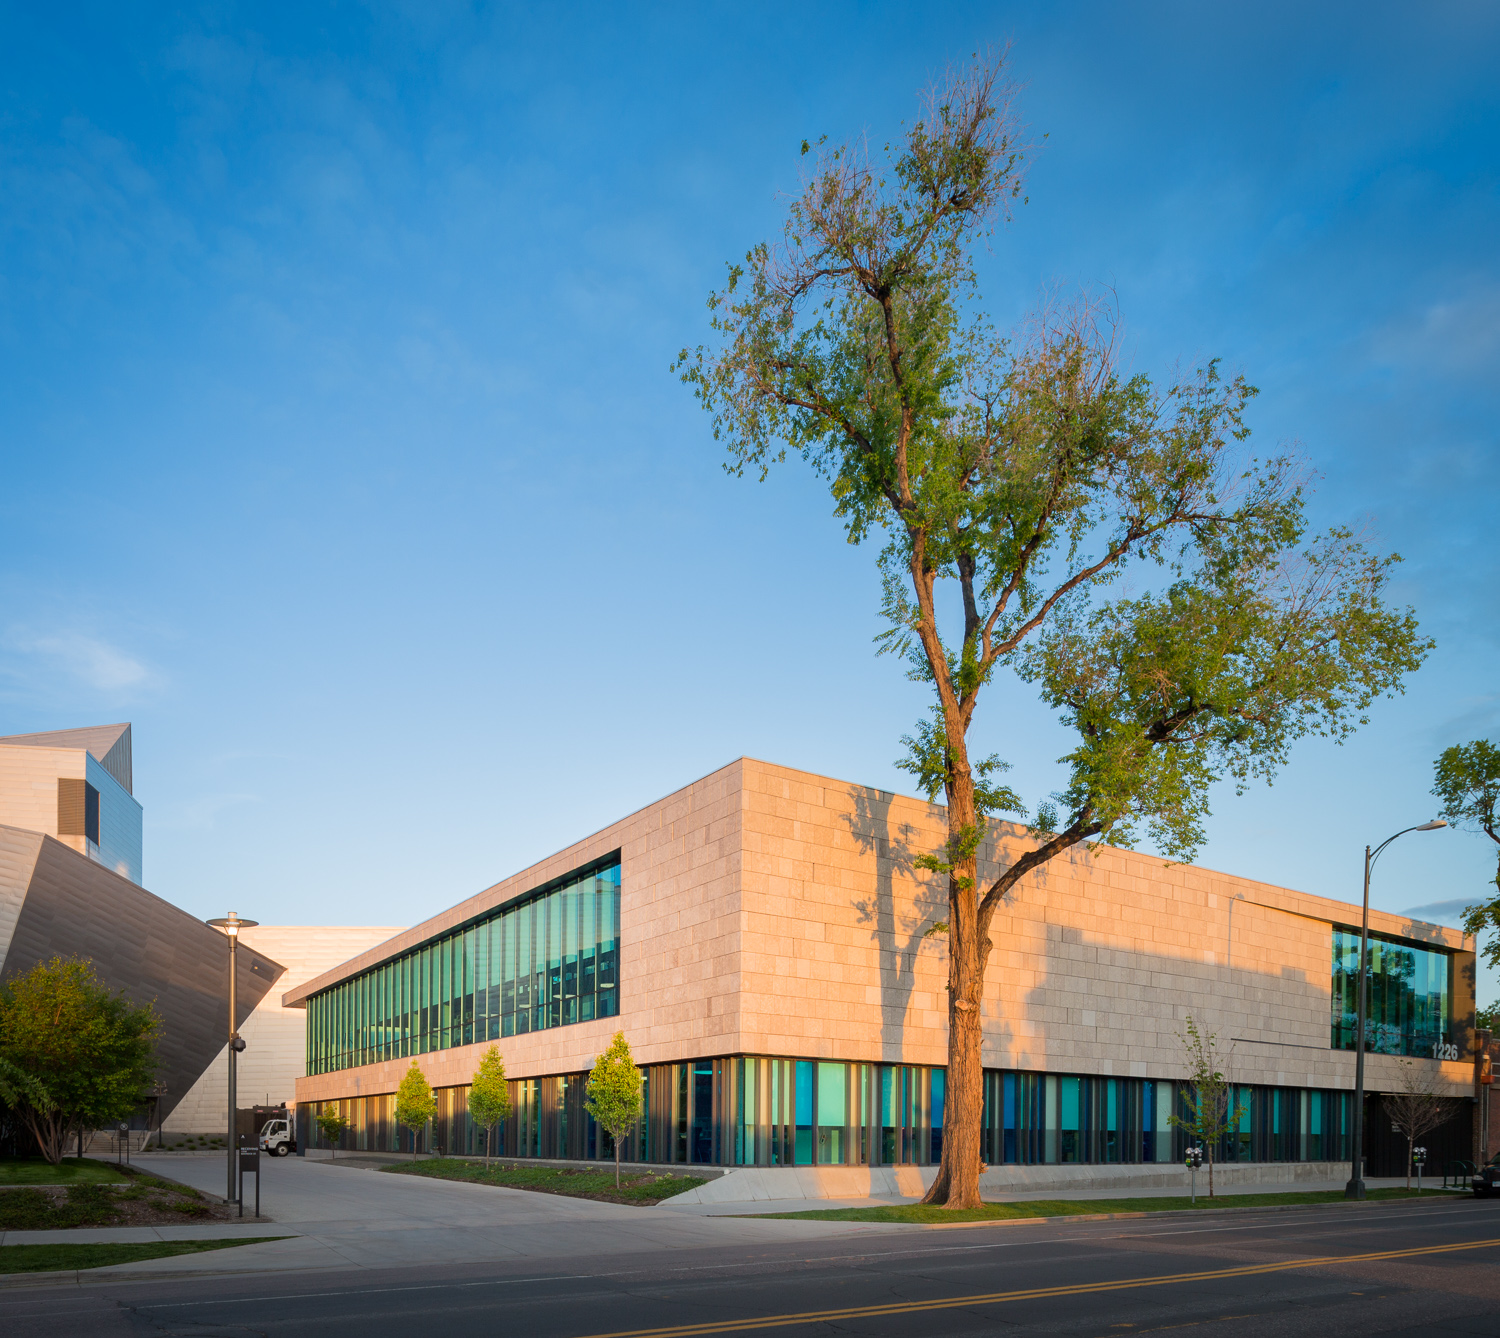 DENVER ART MUSEUM'S ADMIN BUILDING by ROTH SHEPPARD ARCHITECTS © 2015 JC Buck